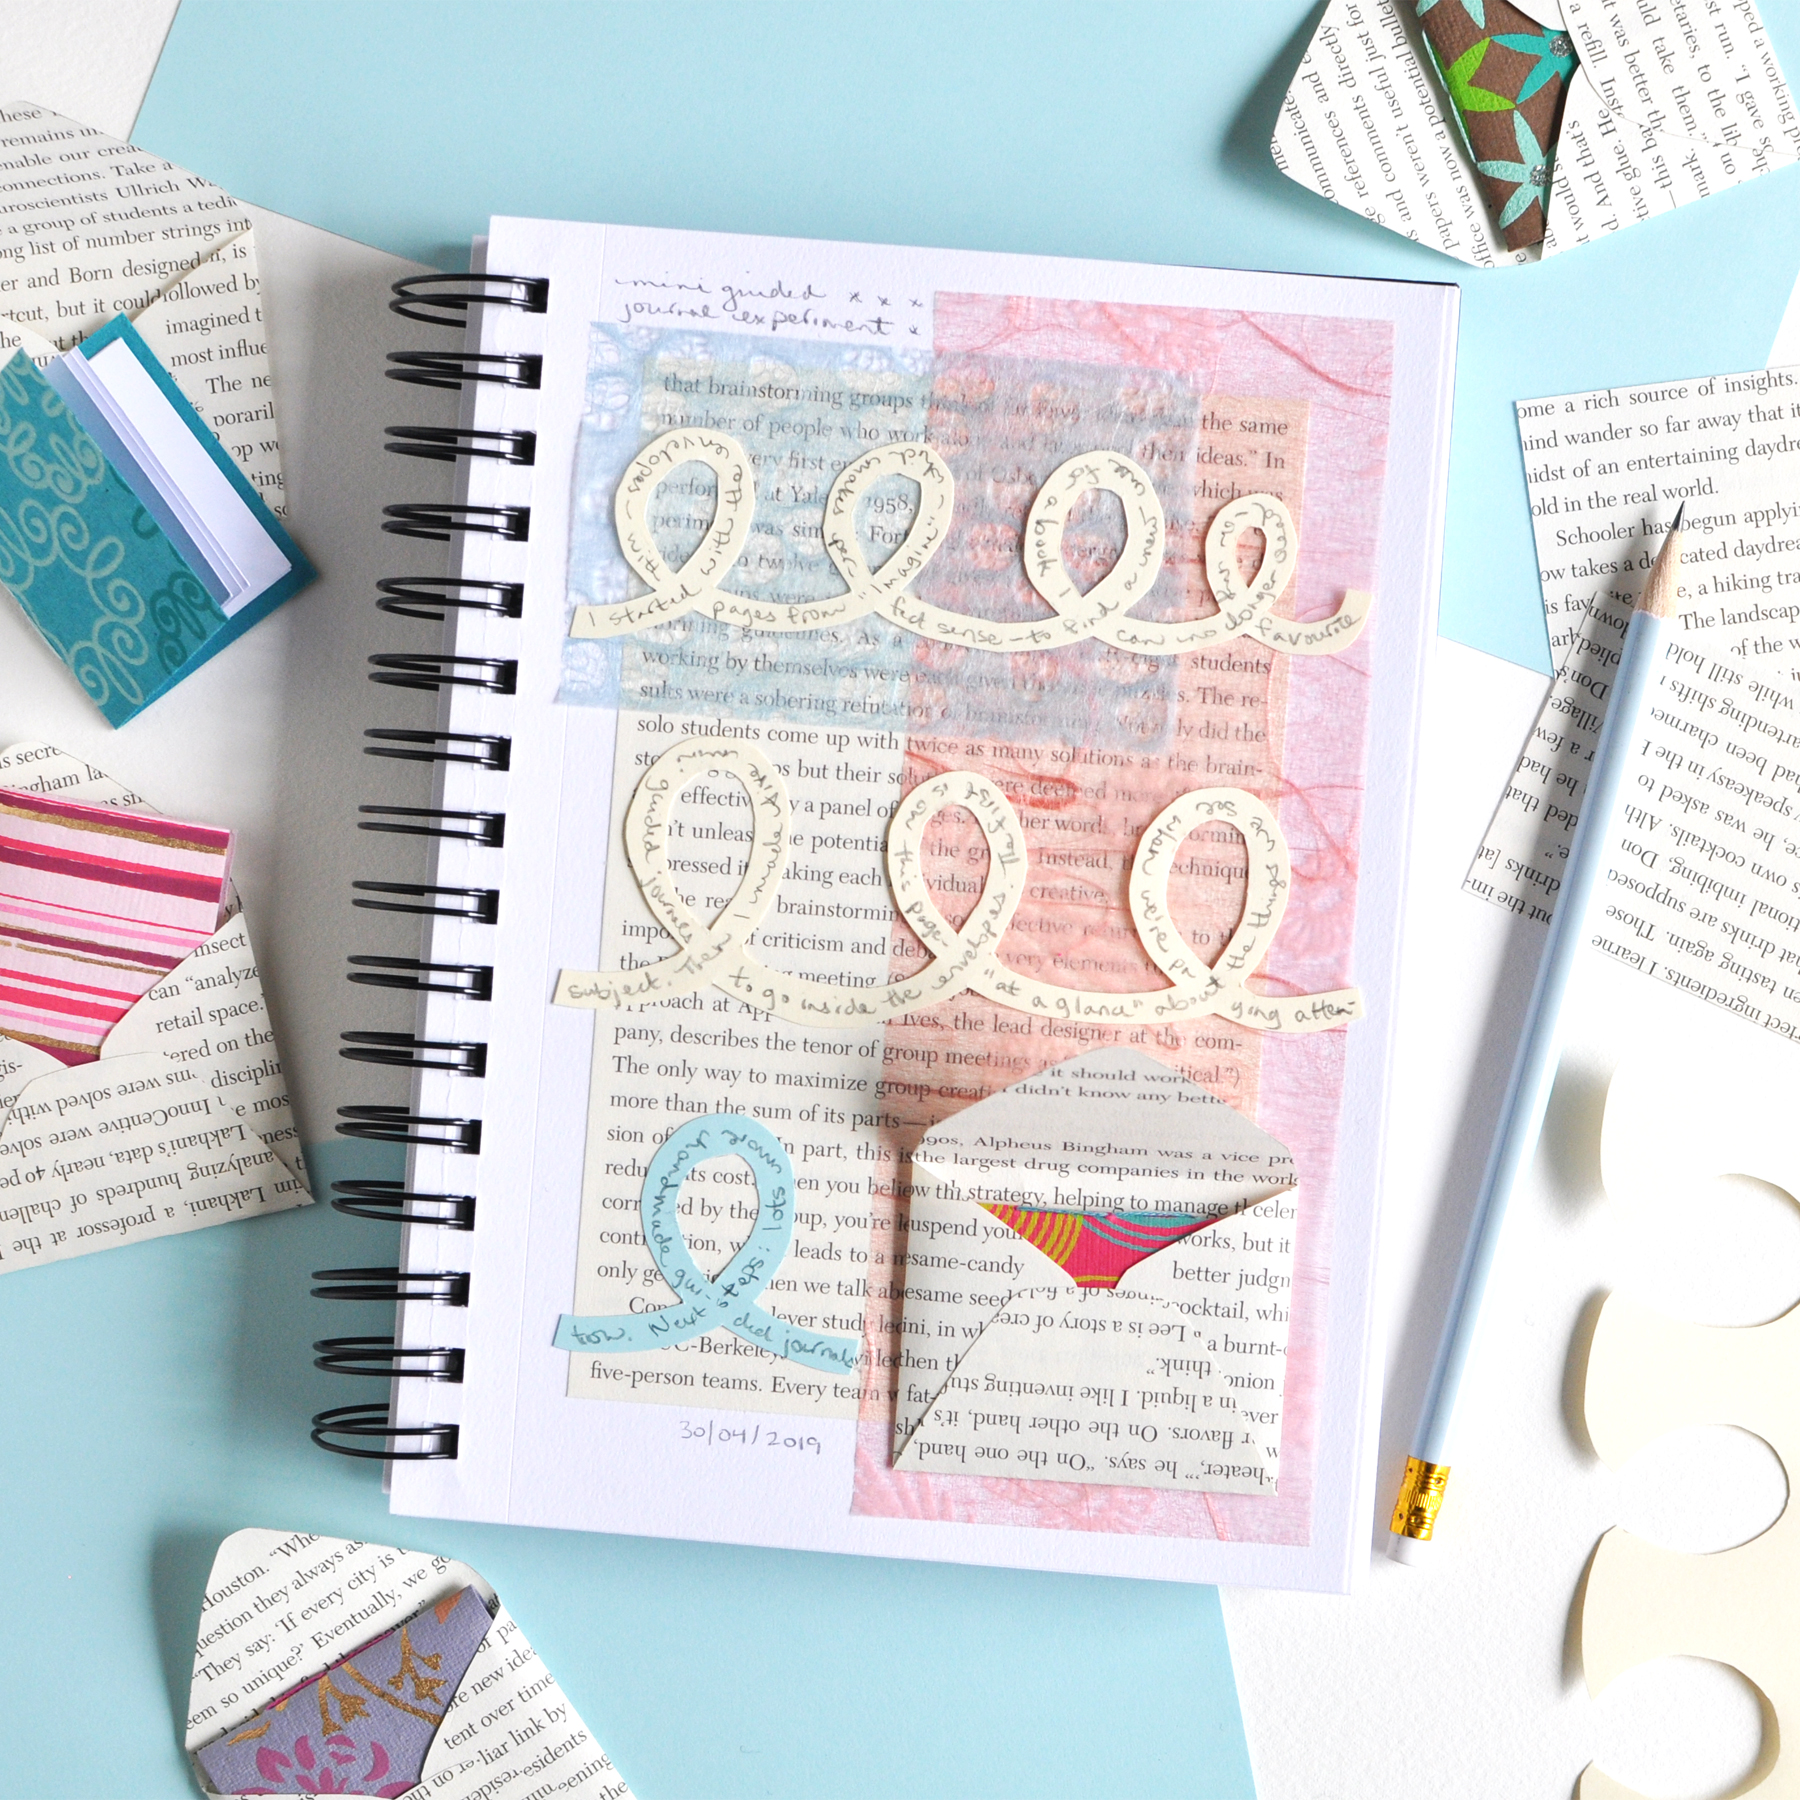 30-04-2019-Mini-Guided-Journal-Page-by-Christie-Zimmer.jpg